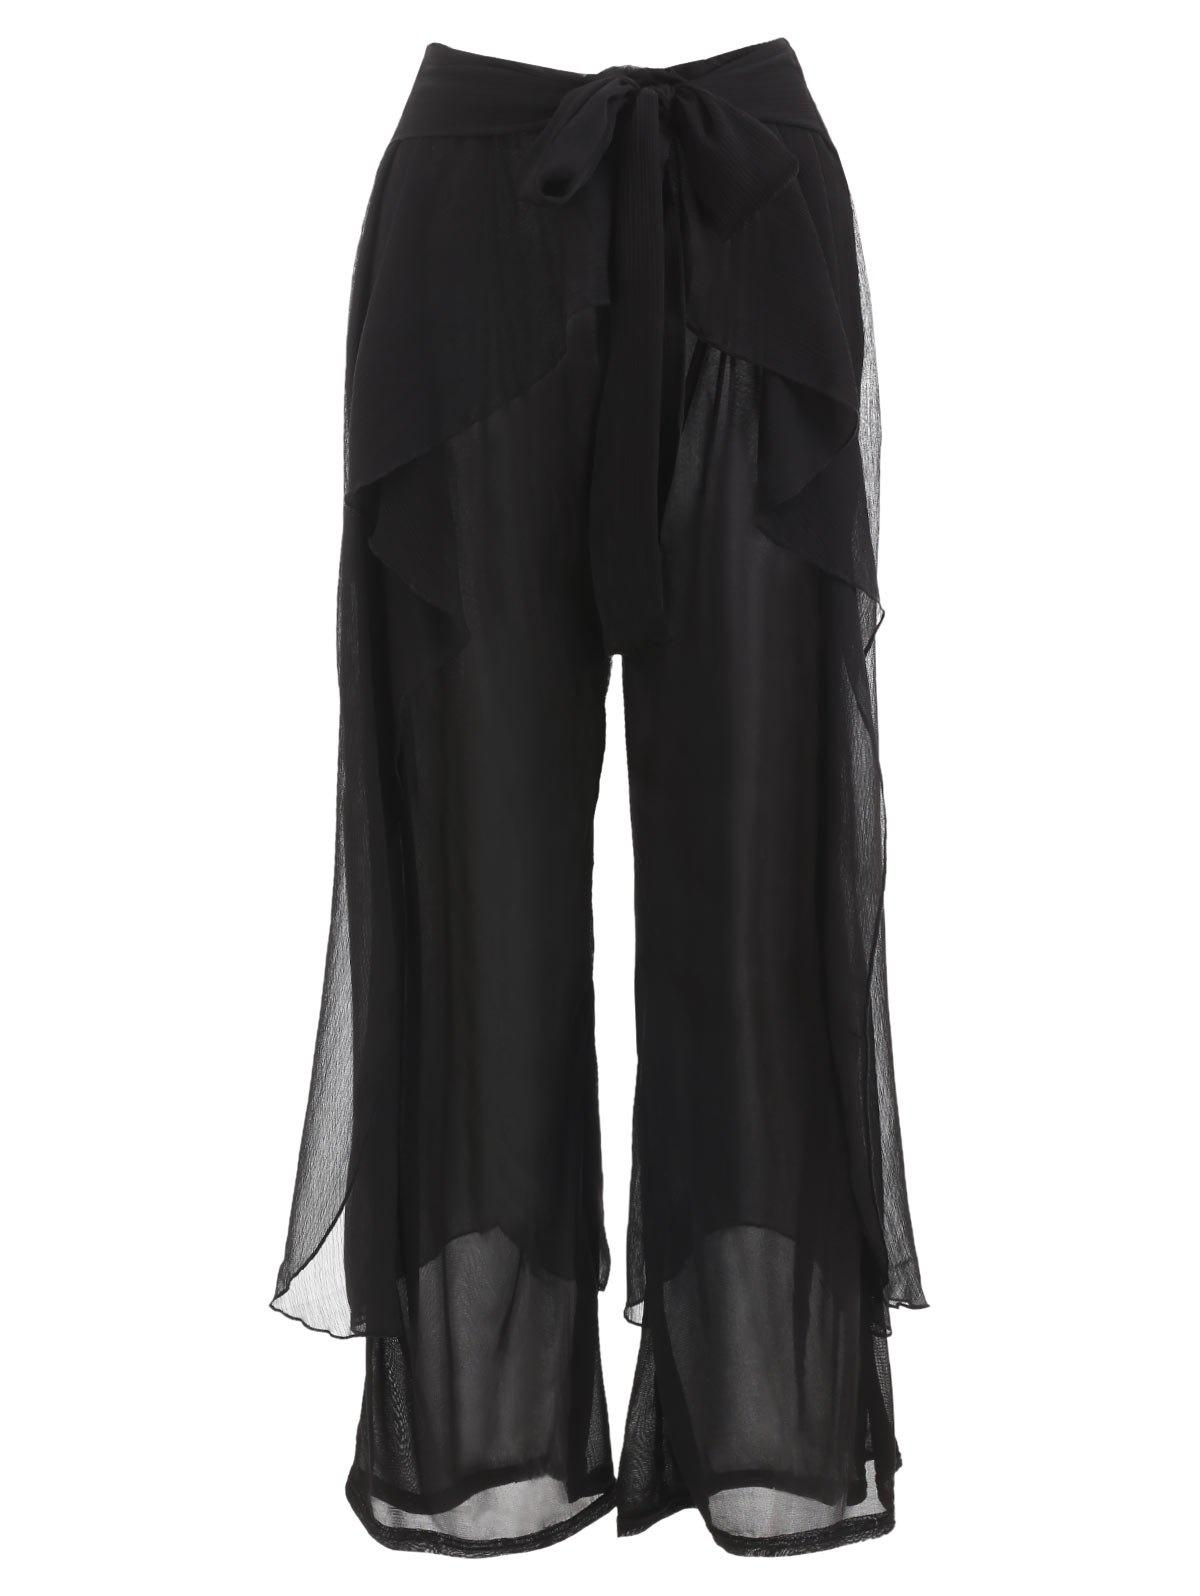 Flounce Panel Wide Leg Pants - BLACK L